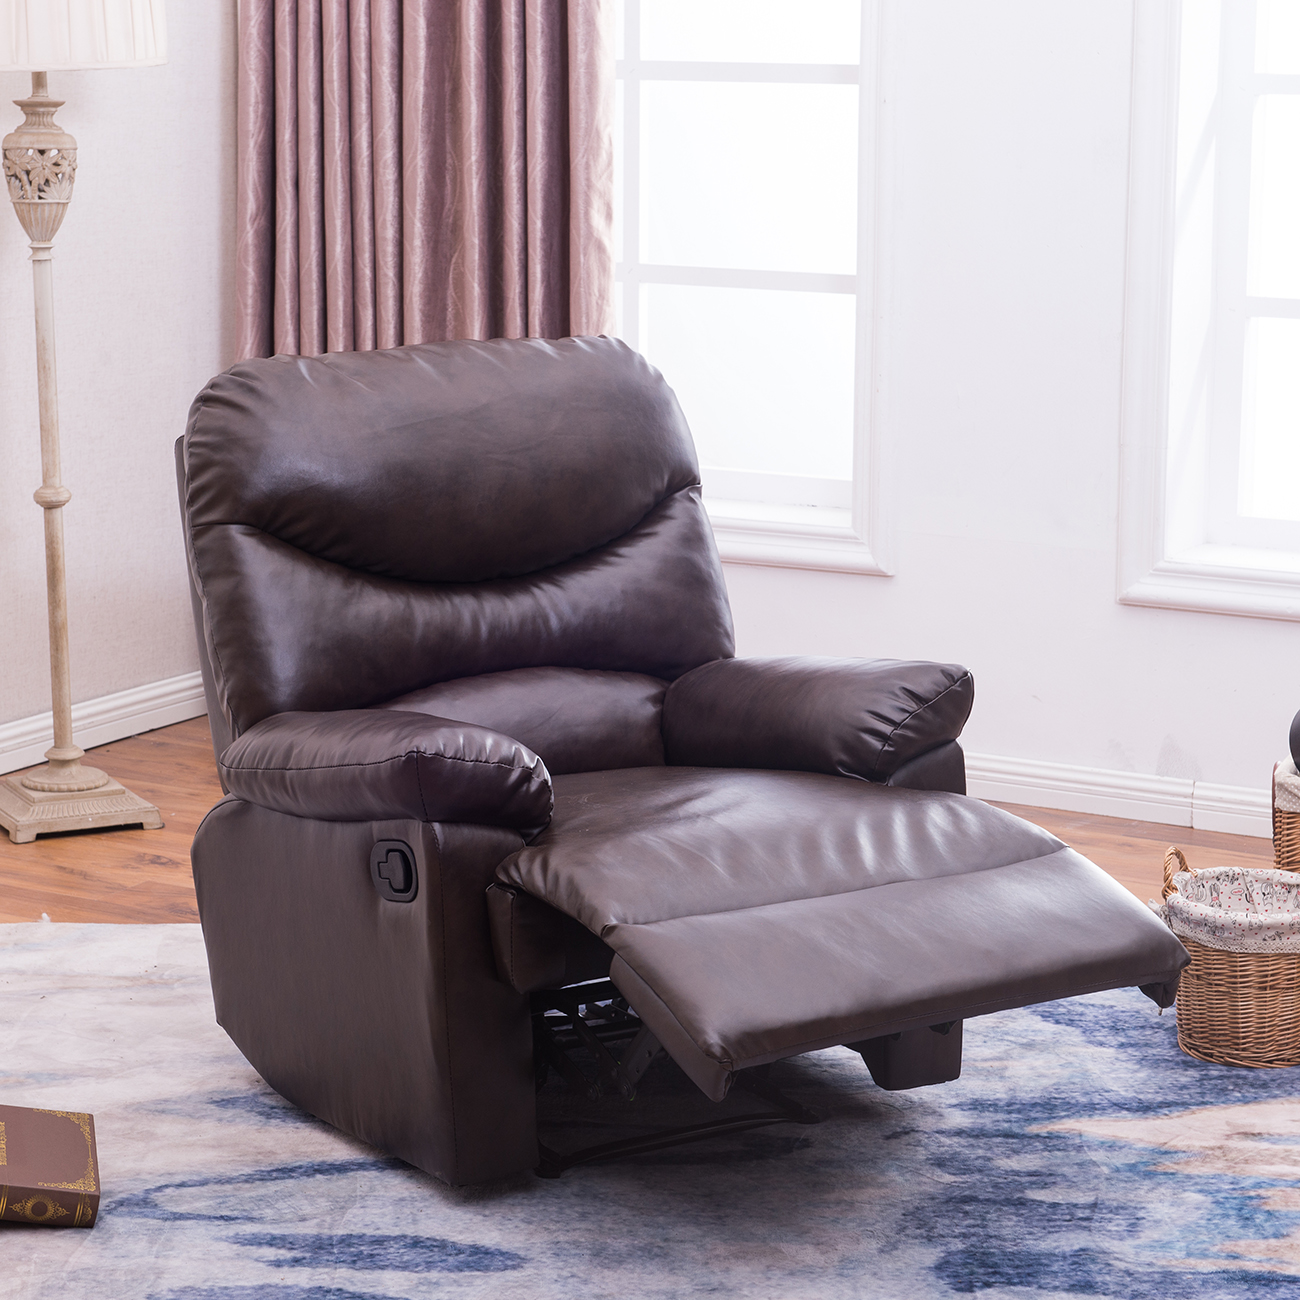 swivel recliner chairs for living room 2. Brown Coffee Leather Upholstered Recliner Chair Home Living Room Furniture  Den